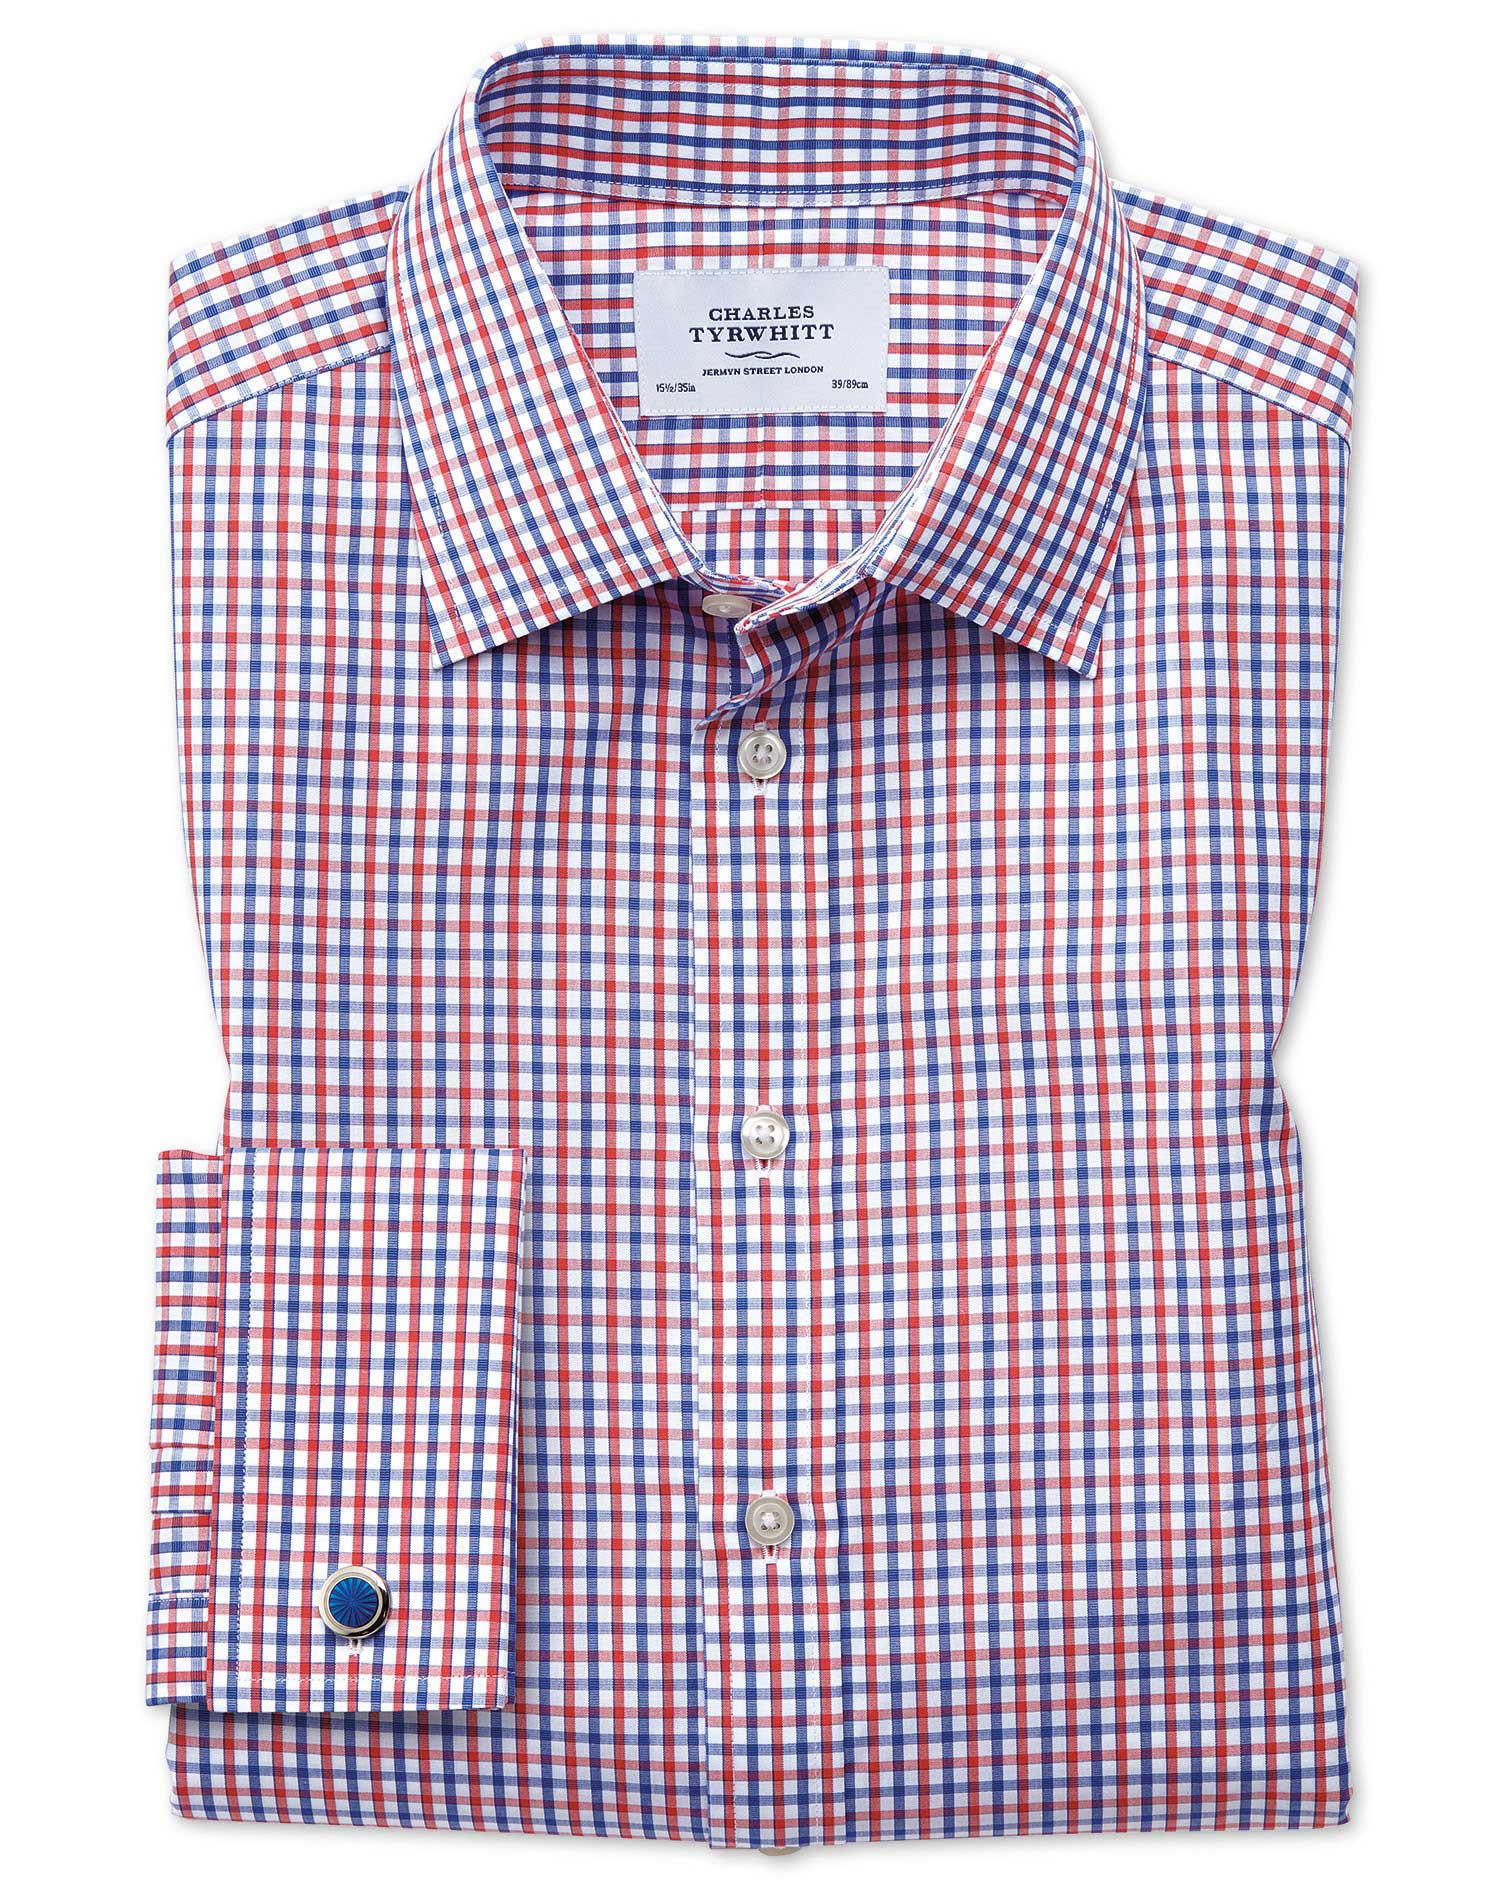 Classic Fit Two Colour Check Red and Blue Cotton Formal Shirt Single Cuff Size 17.5/34 by Charles Ty